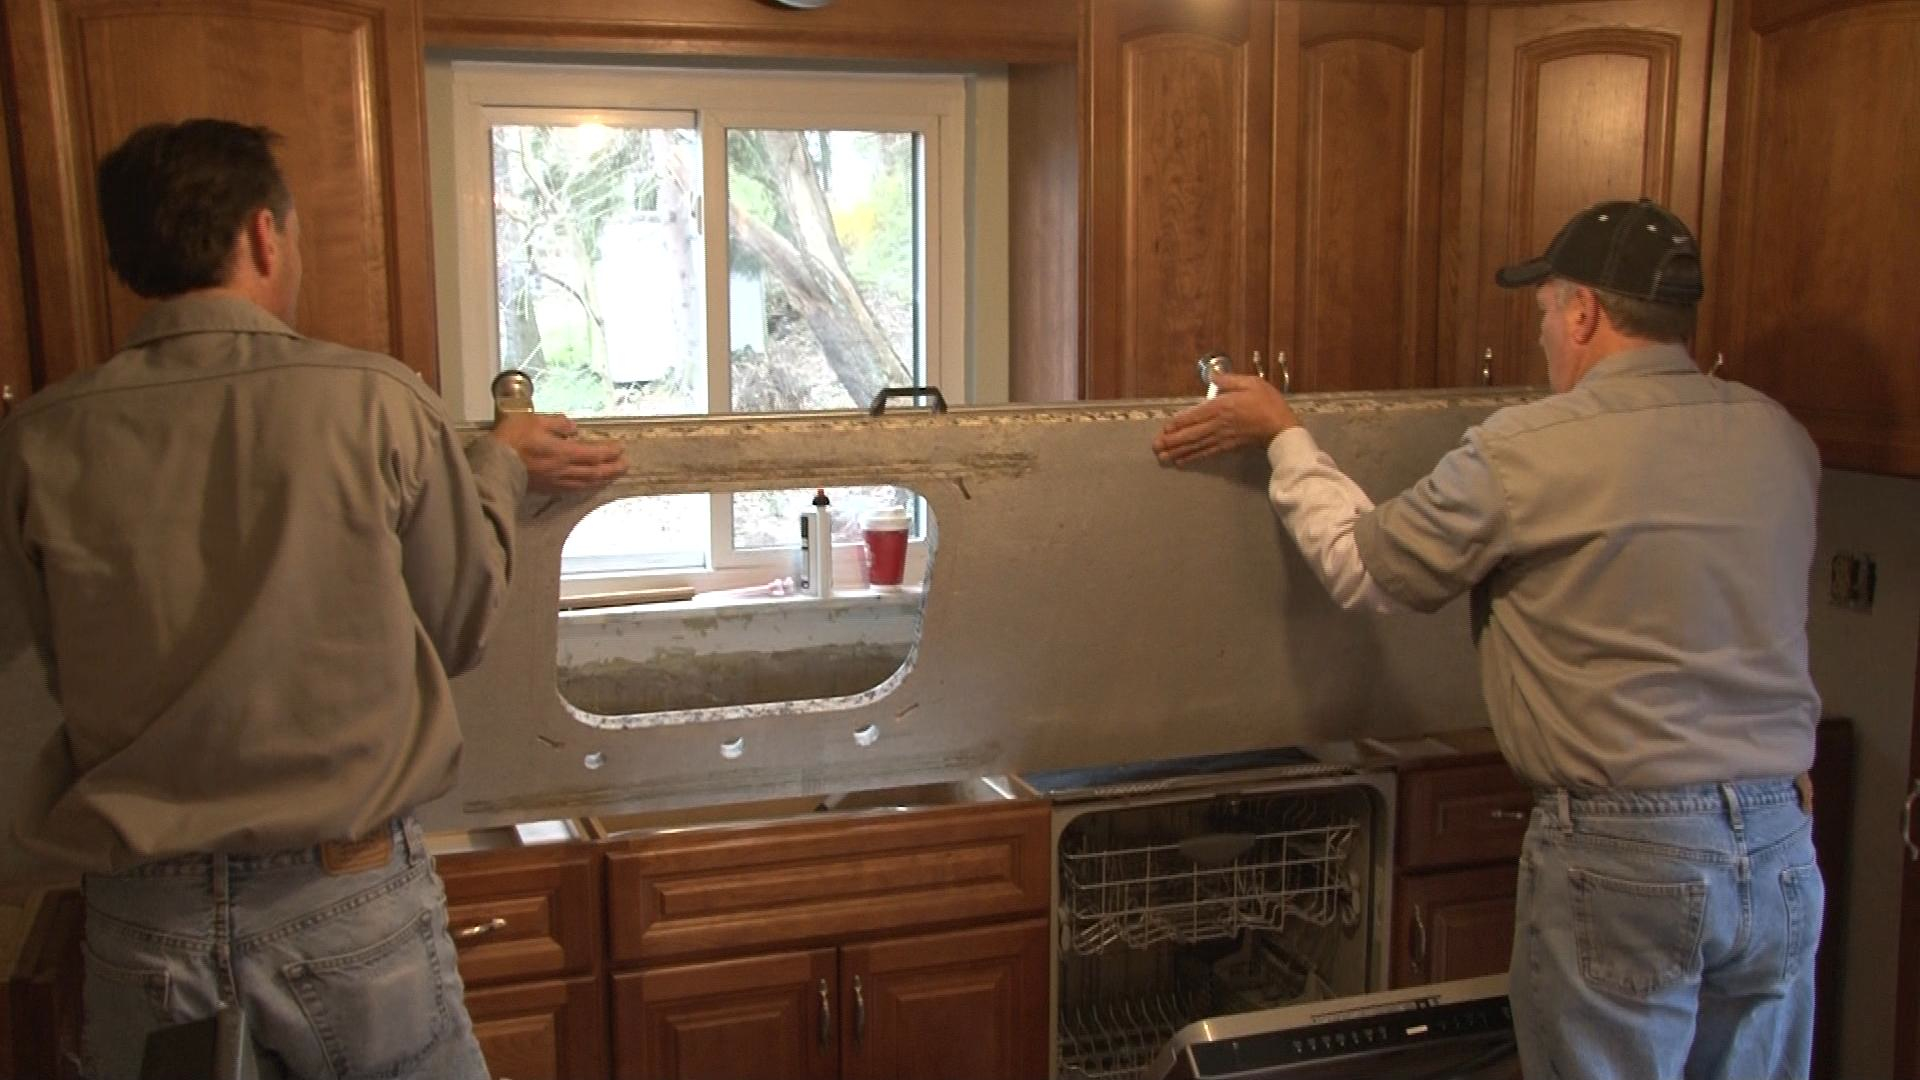 How to install granite countertops Pro Construction Guide